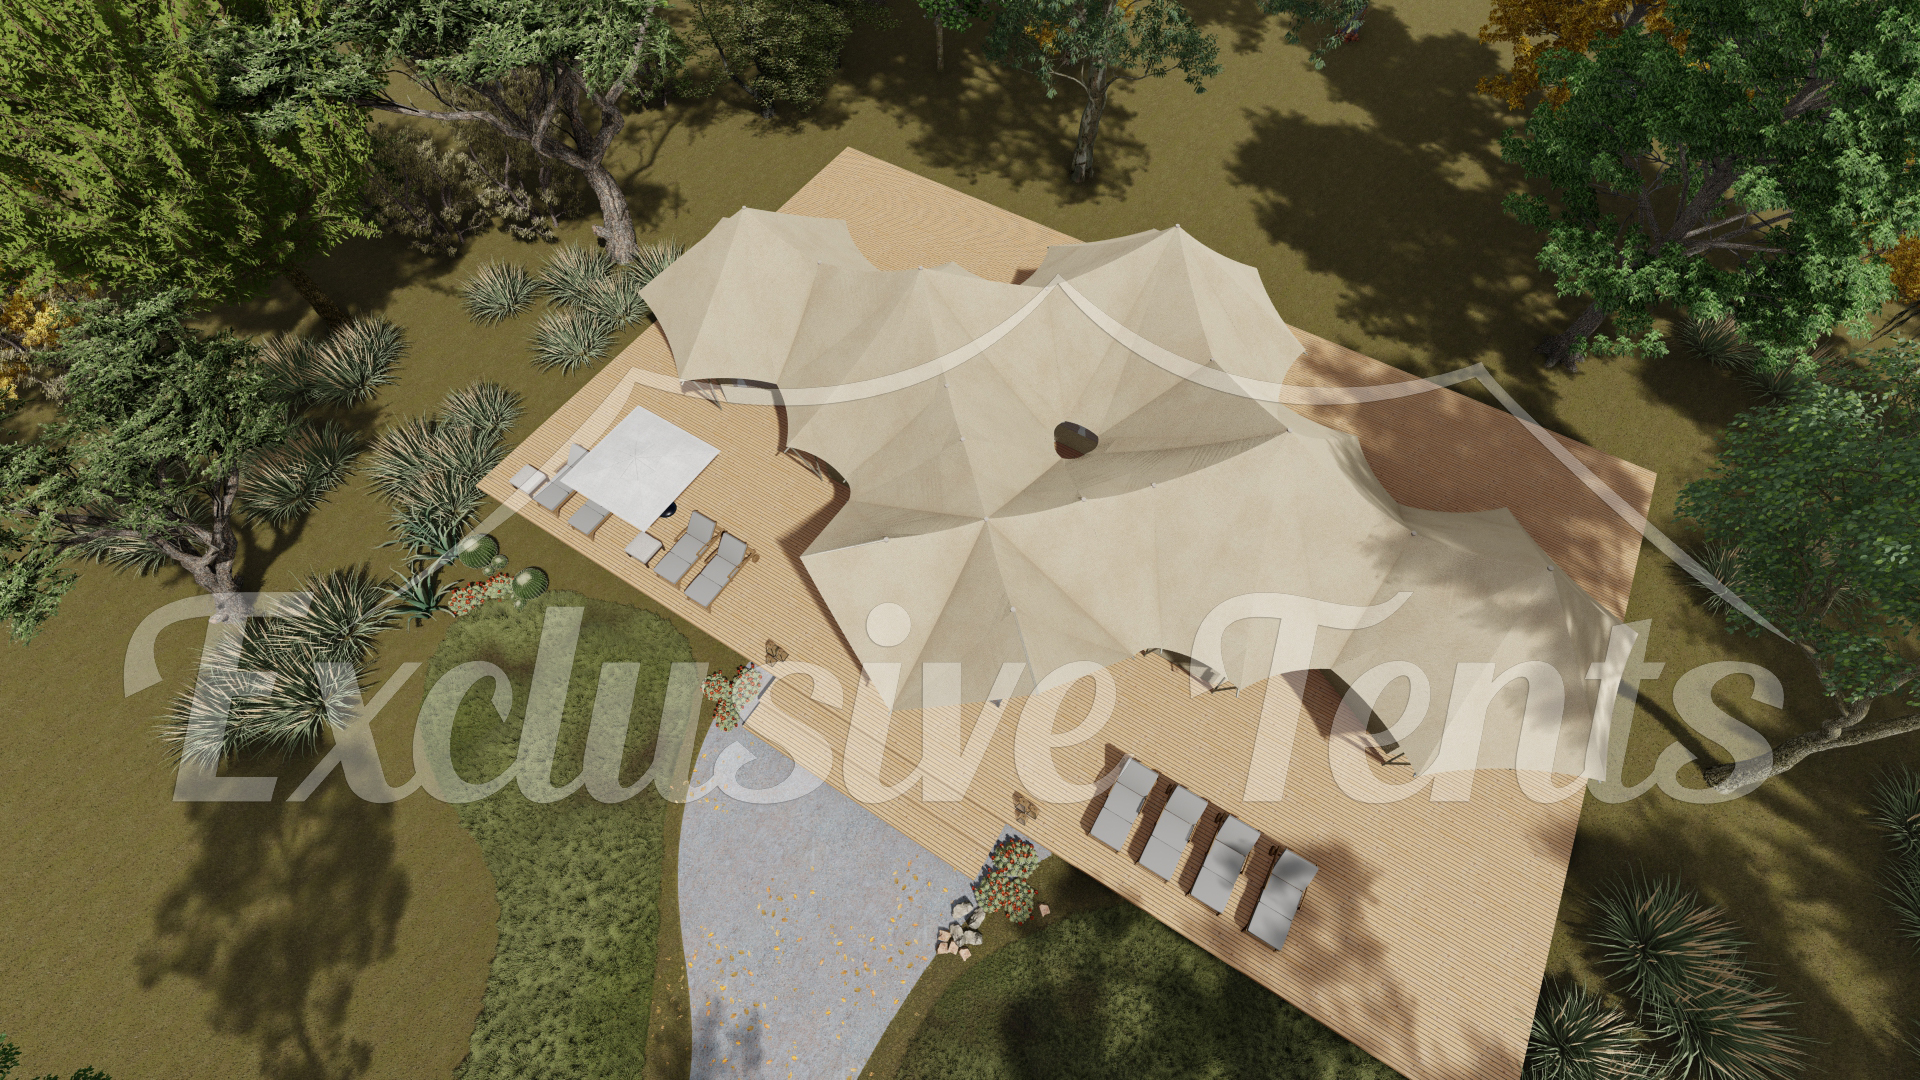 Large Luxury Glamping Tents